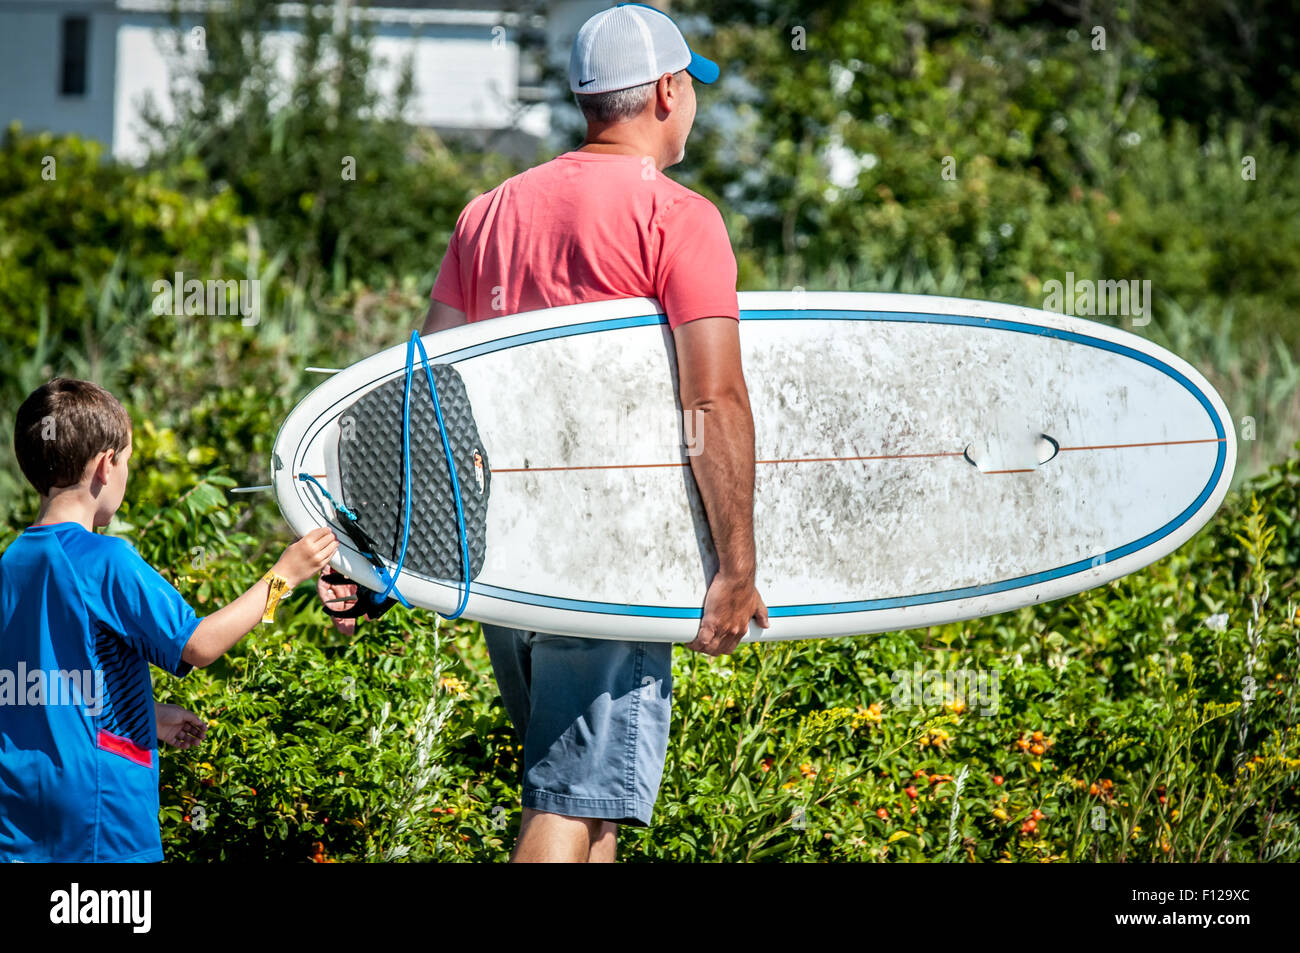 LOOKING FOR WAVES,On a nice Summer day this father, and son, walk down the town street with a surfboard, maybe looking - Stock Image